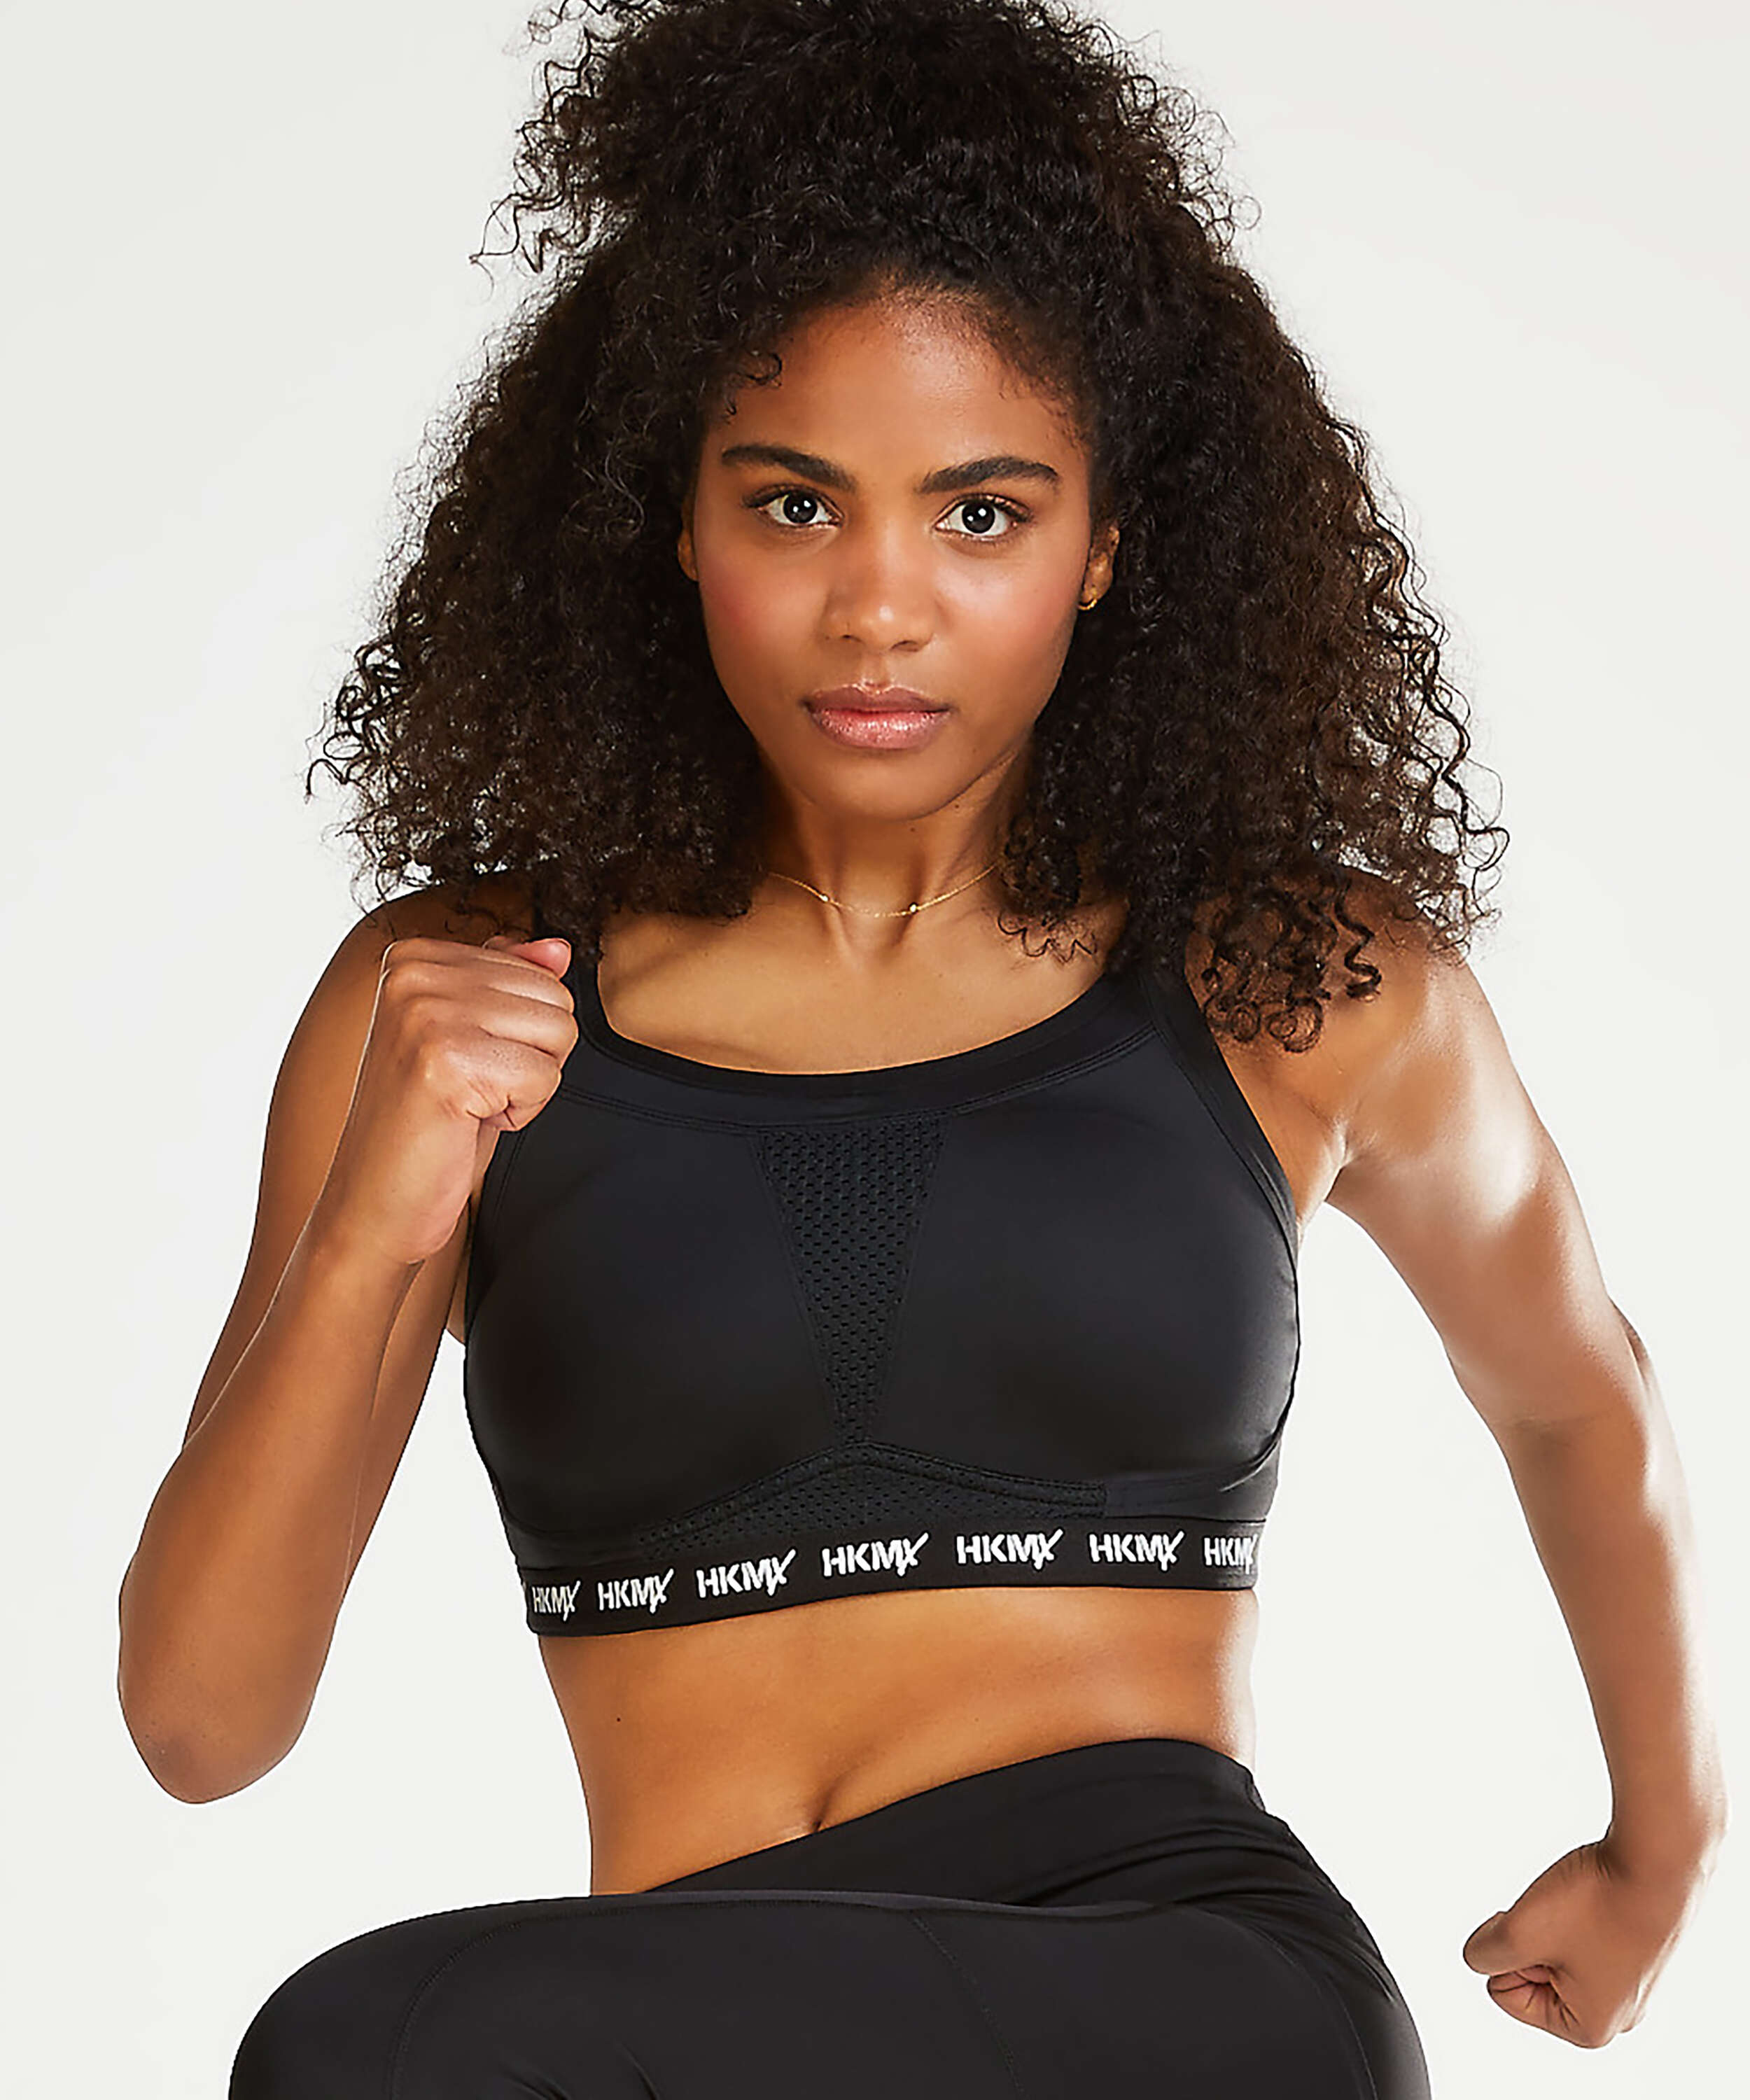 HKMX Sports bra The Elite Level 3, Black, main